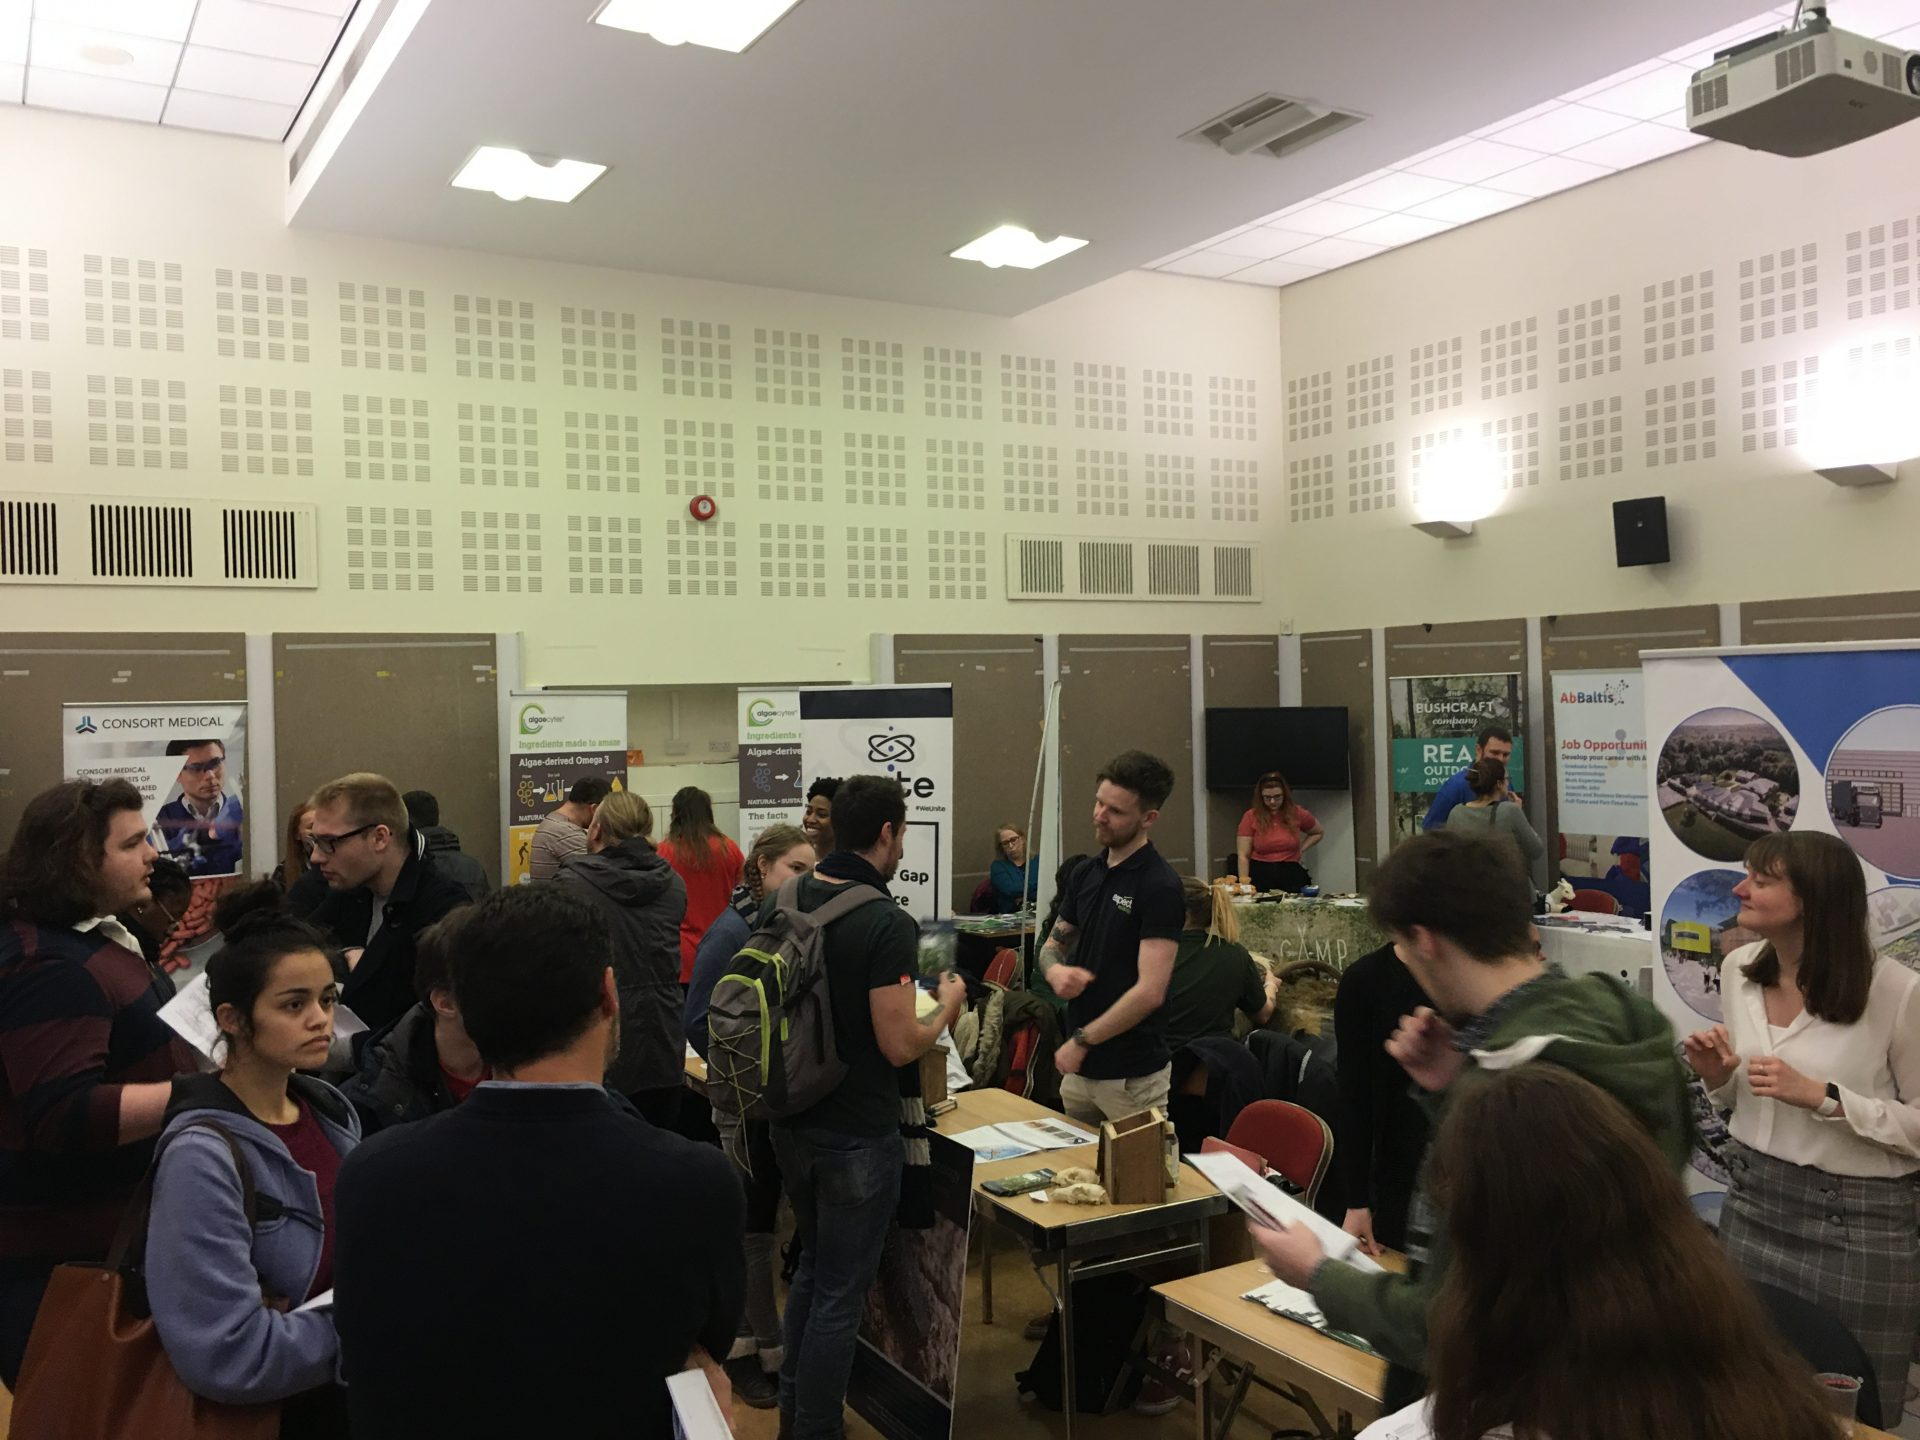 The Life Sciences and Research Employability Fair 2020